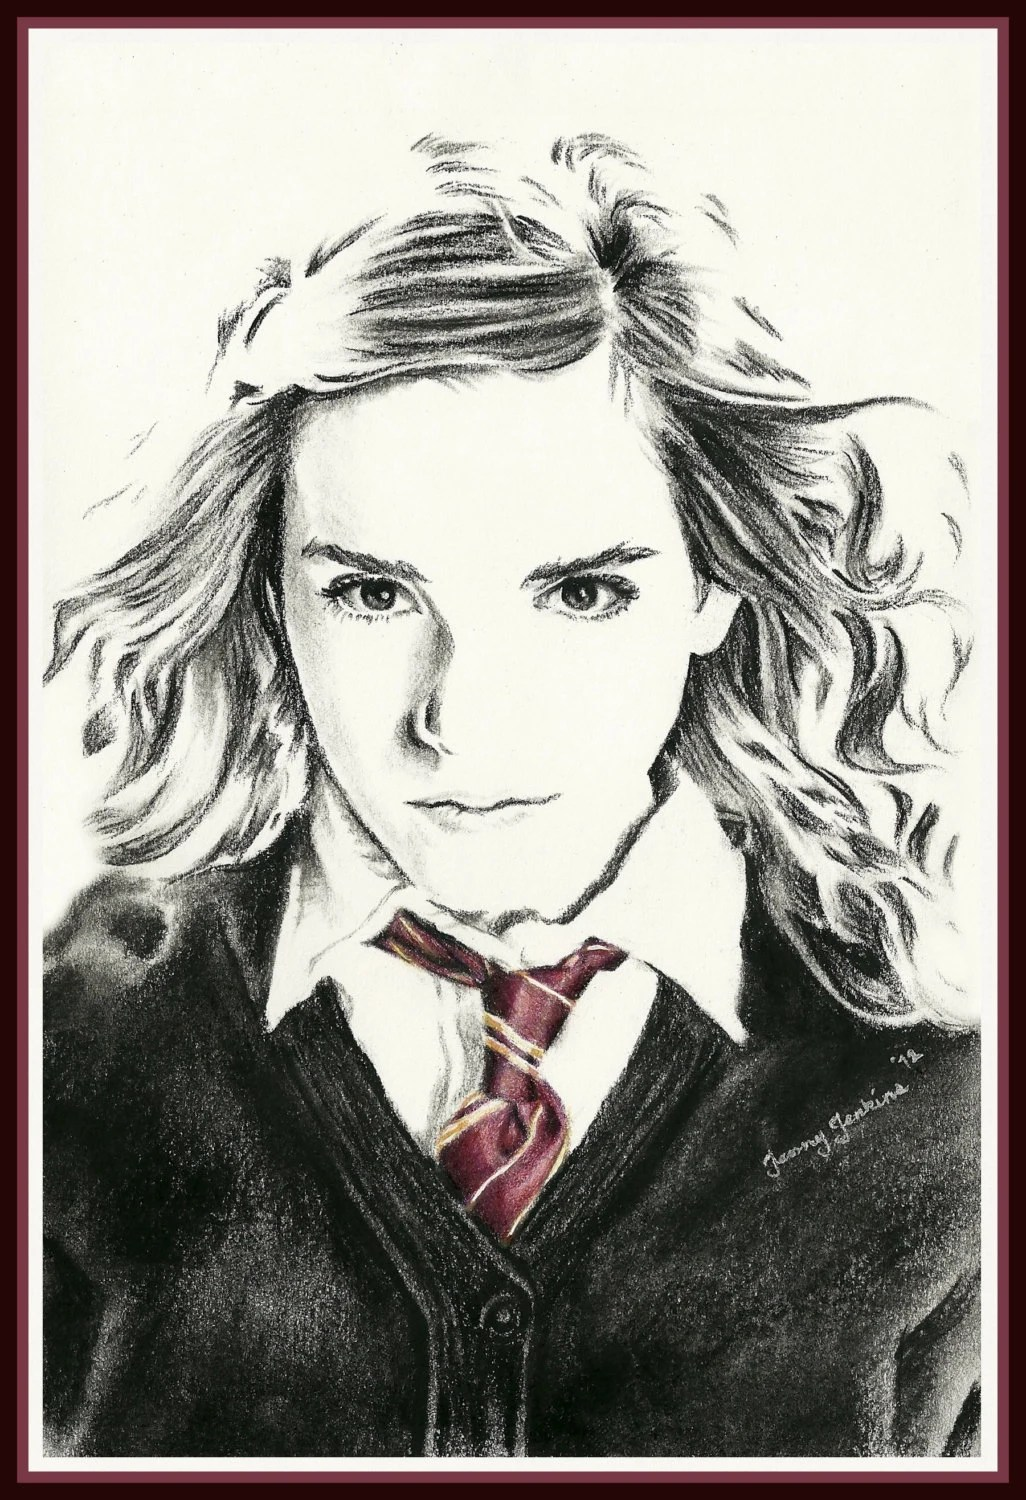 Harry Potter Character Drawings By Jennyannjenkins On Etsy